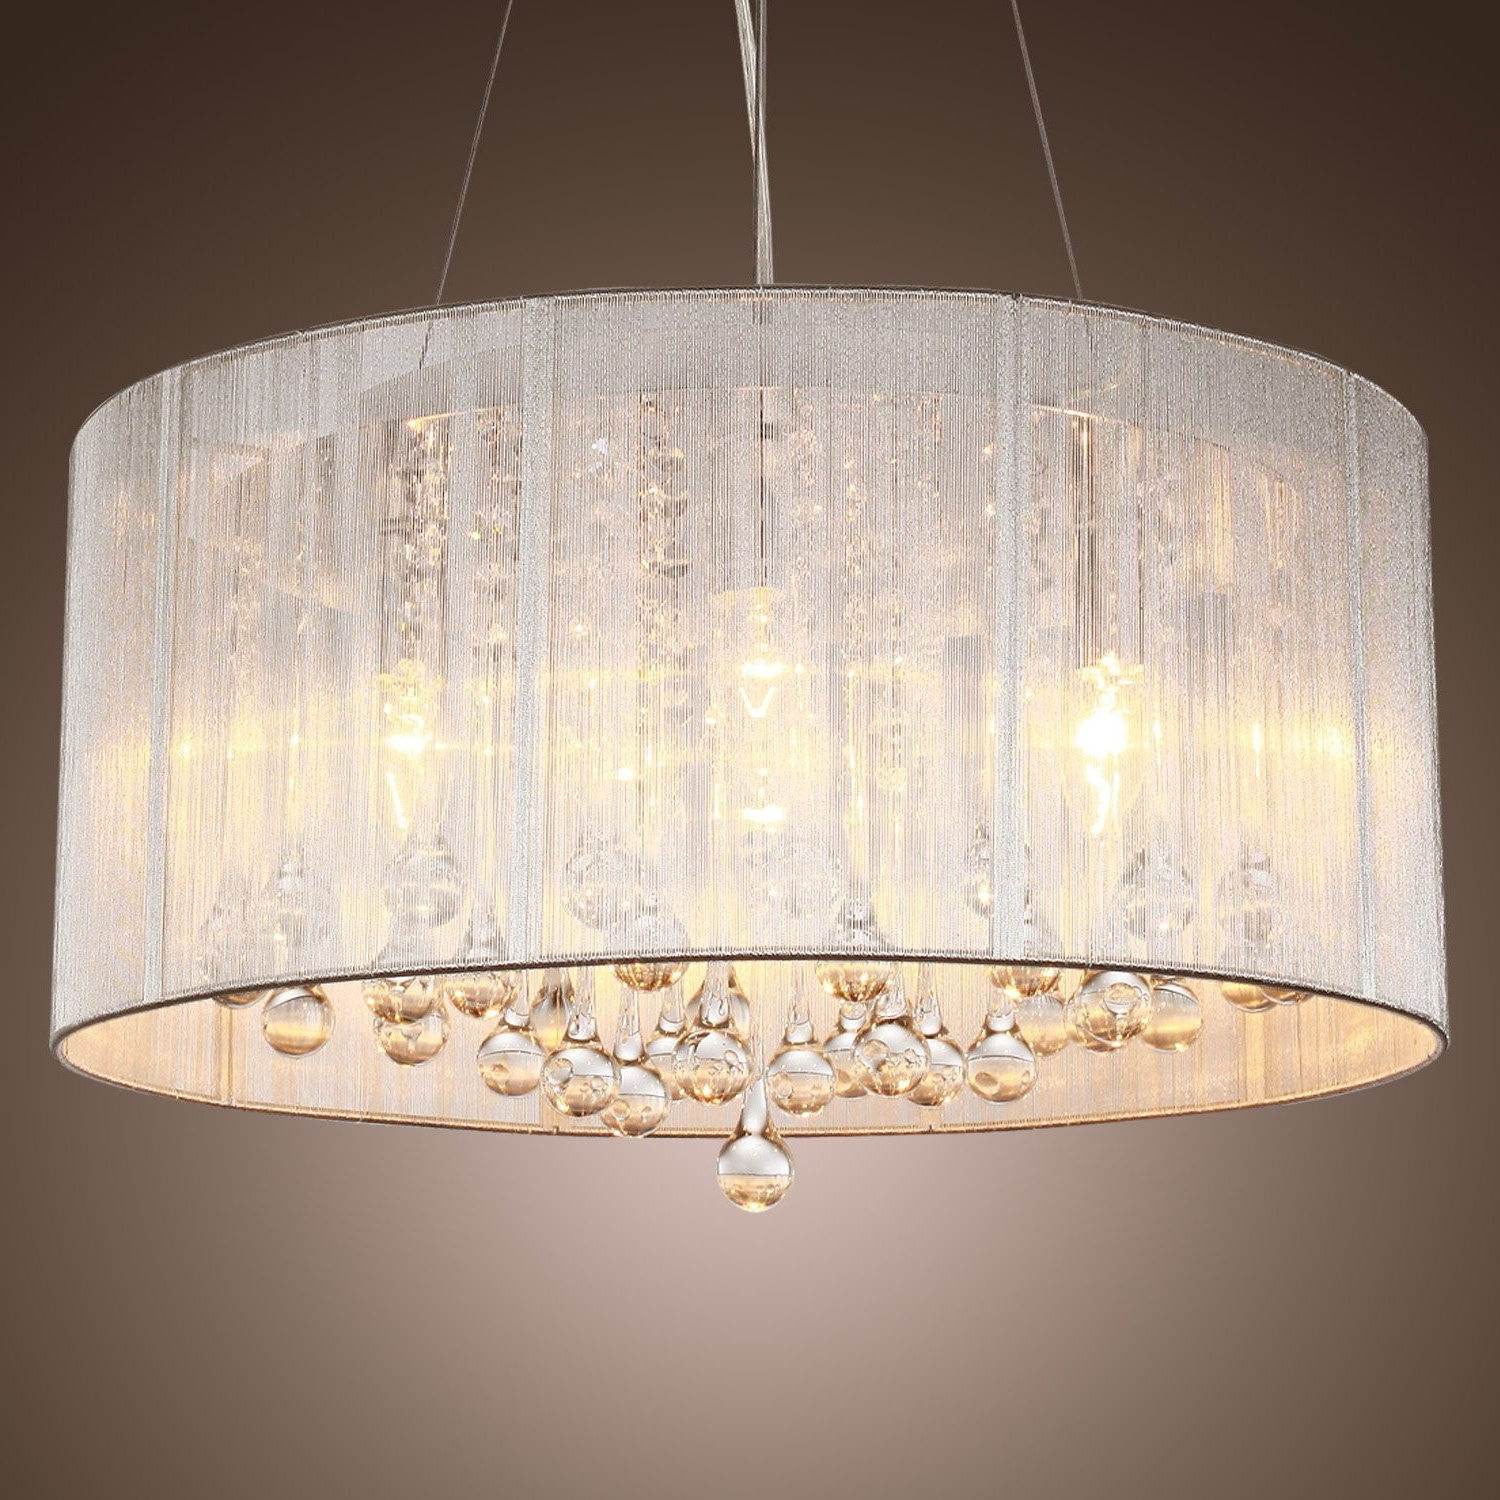 Drum Lamp Shades For Chandeliers In Recent Chandelier With Drum Shade – Espan (Gallery 4 of 20)